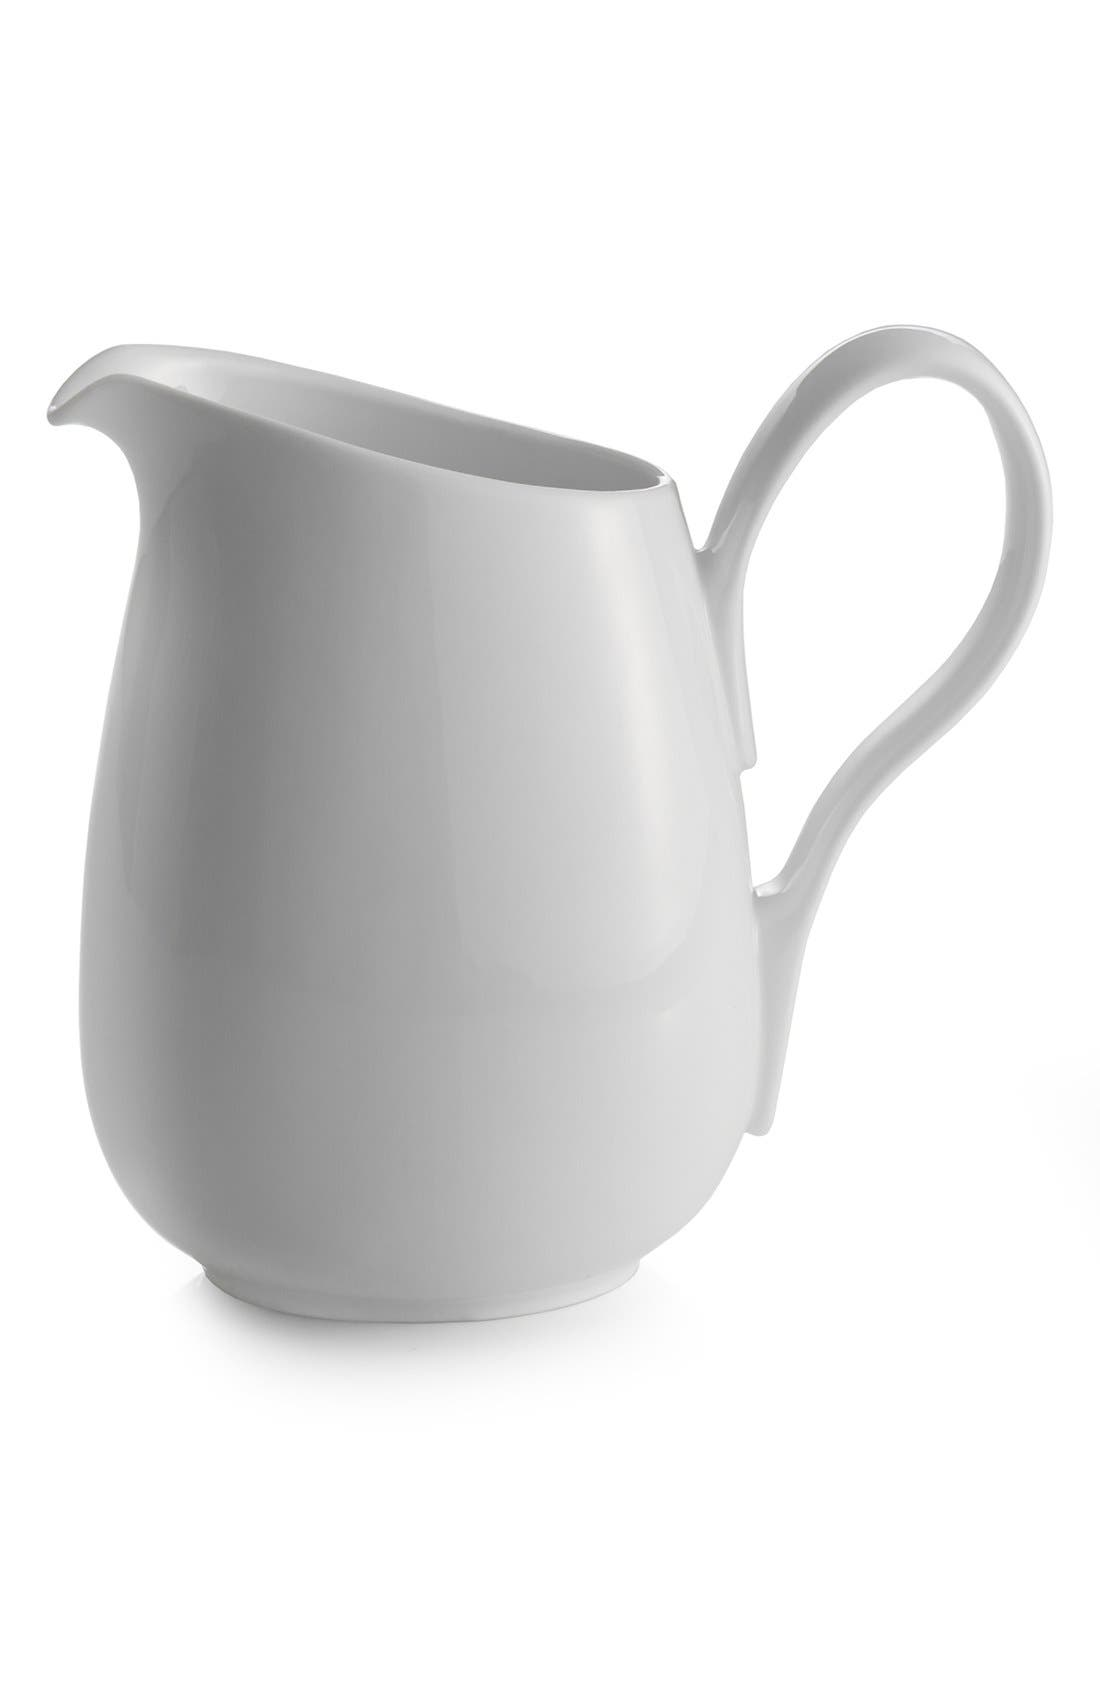 'The Skye Collection' Pitcher,                             Main thumbnail 1, color,                             White